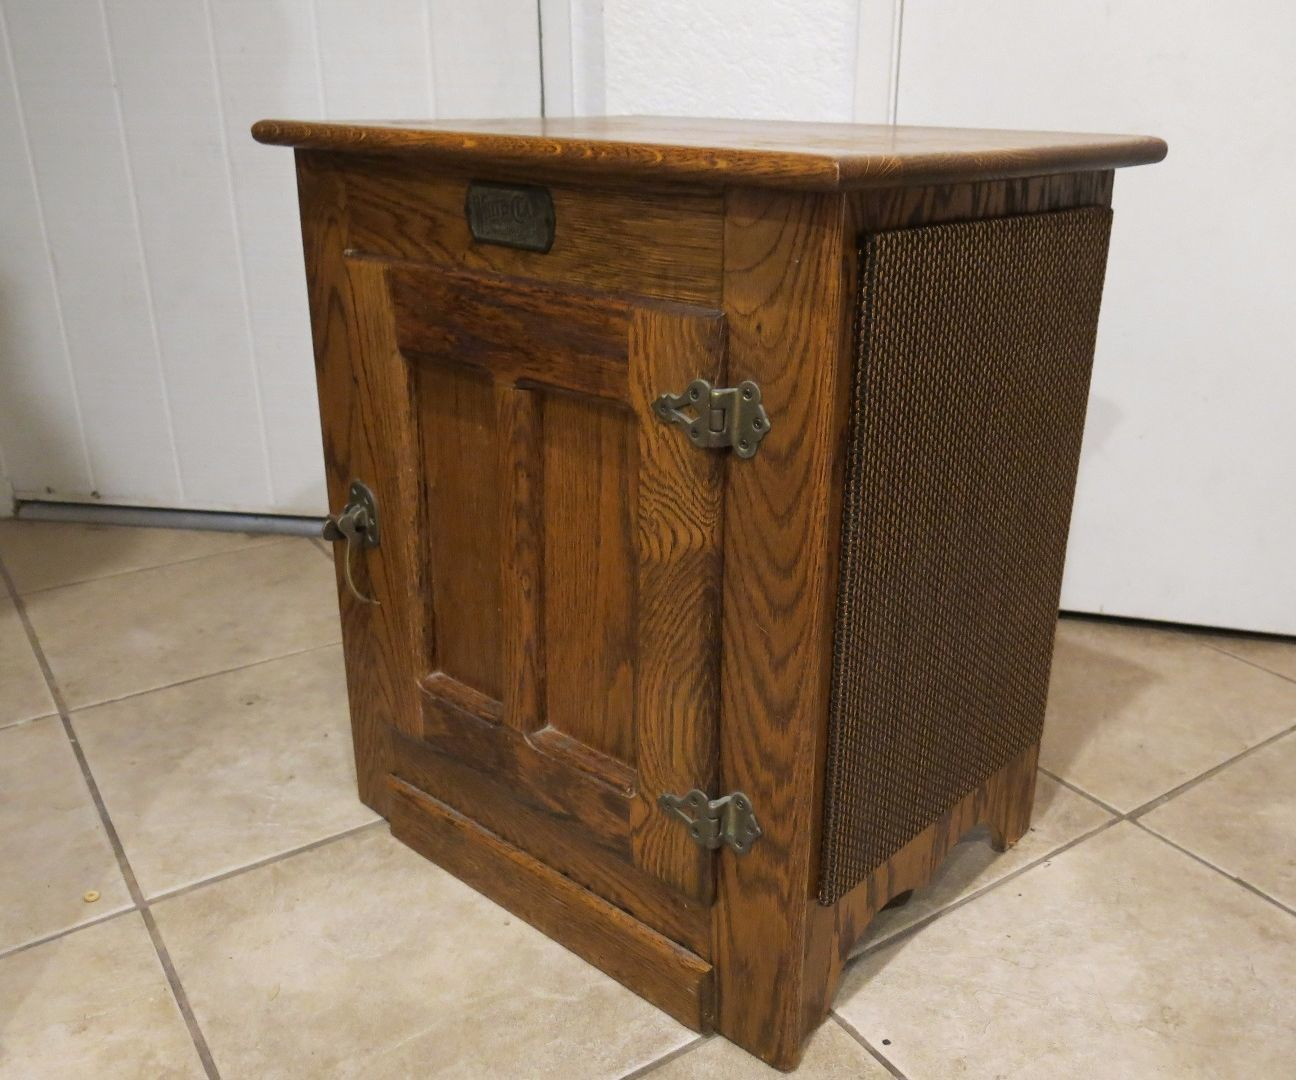 Icebox Jukebox Home Improvement Woodworking Stereo Console